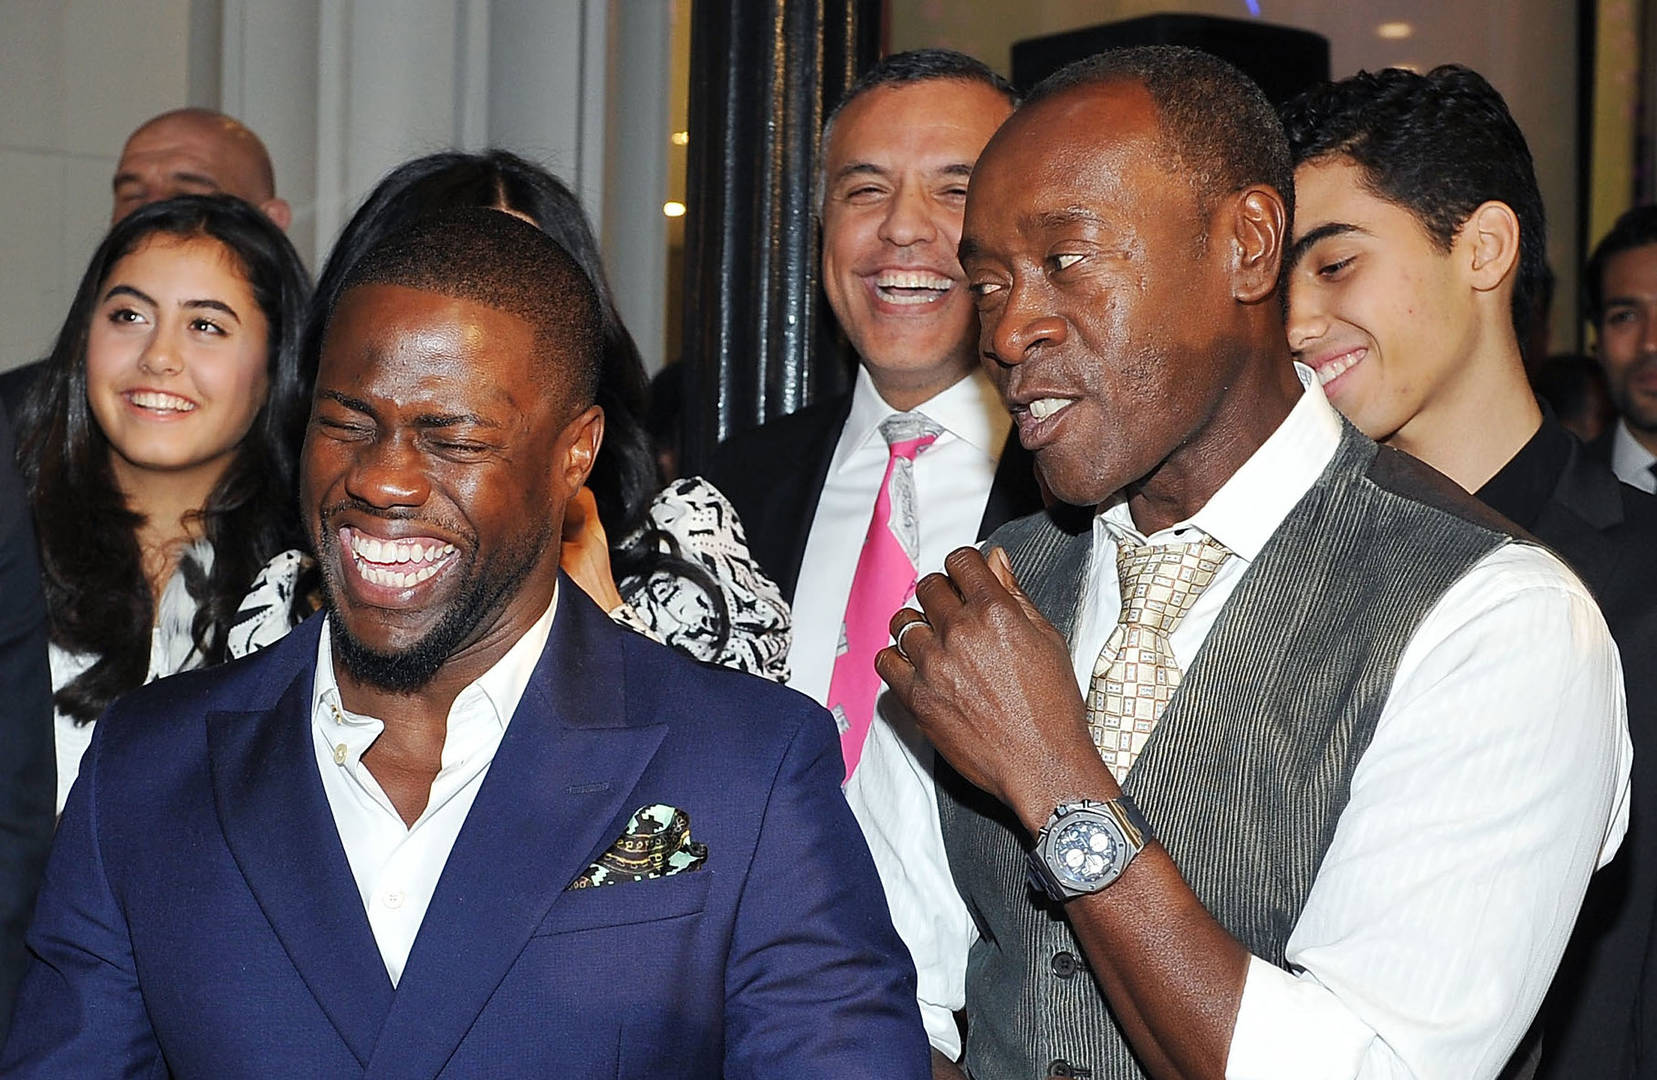 actor Kevin Hart and actor Don Cheadle attend Audemars Piguet Celebrates the opening of Audemars Piguet Rodeo Drive at Audemars Piguet on December 9, 2015 in Beverly Hills, California.